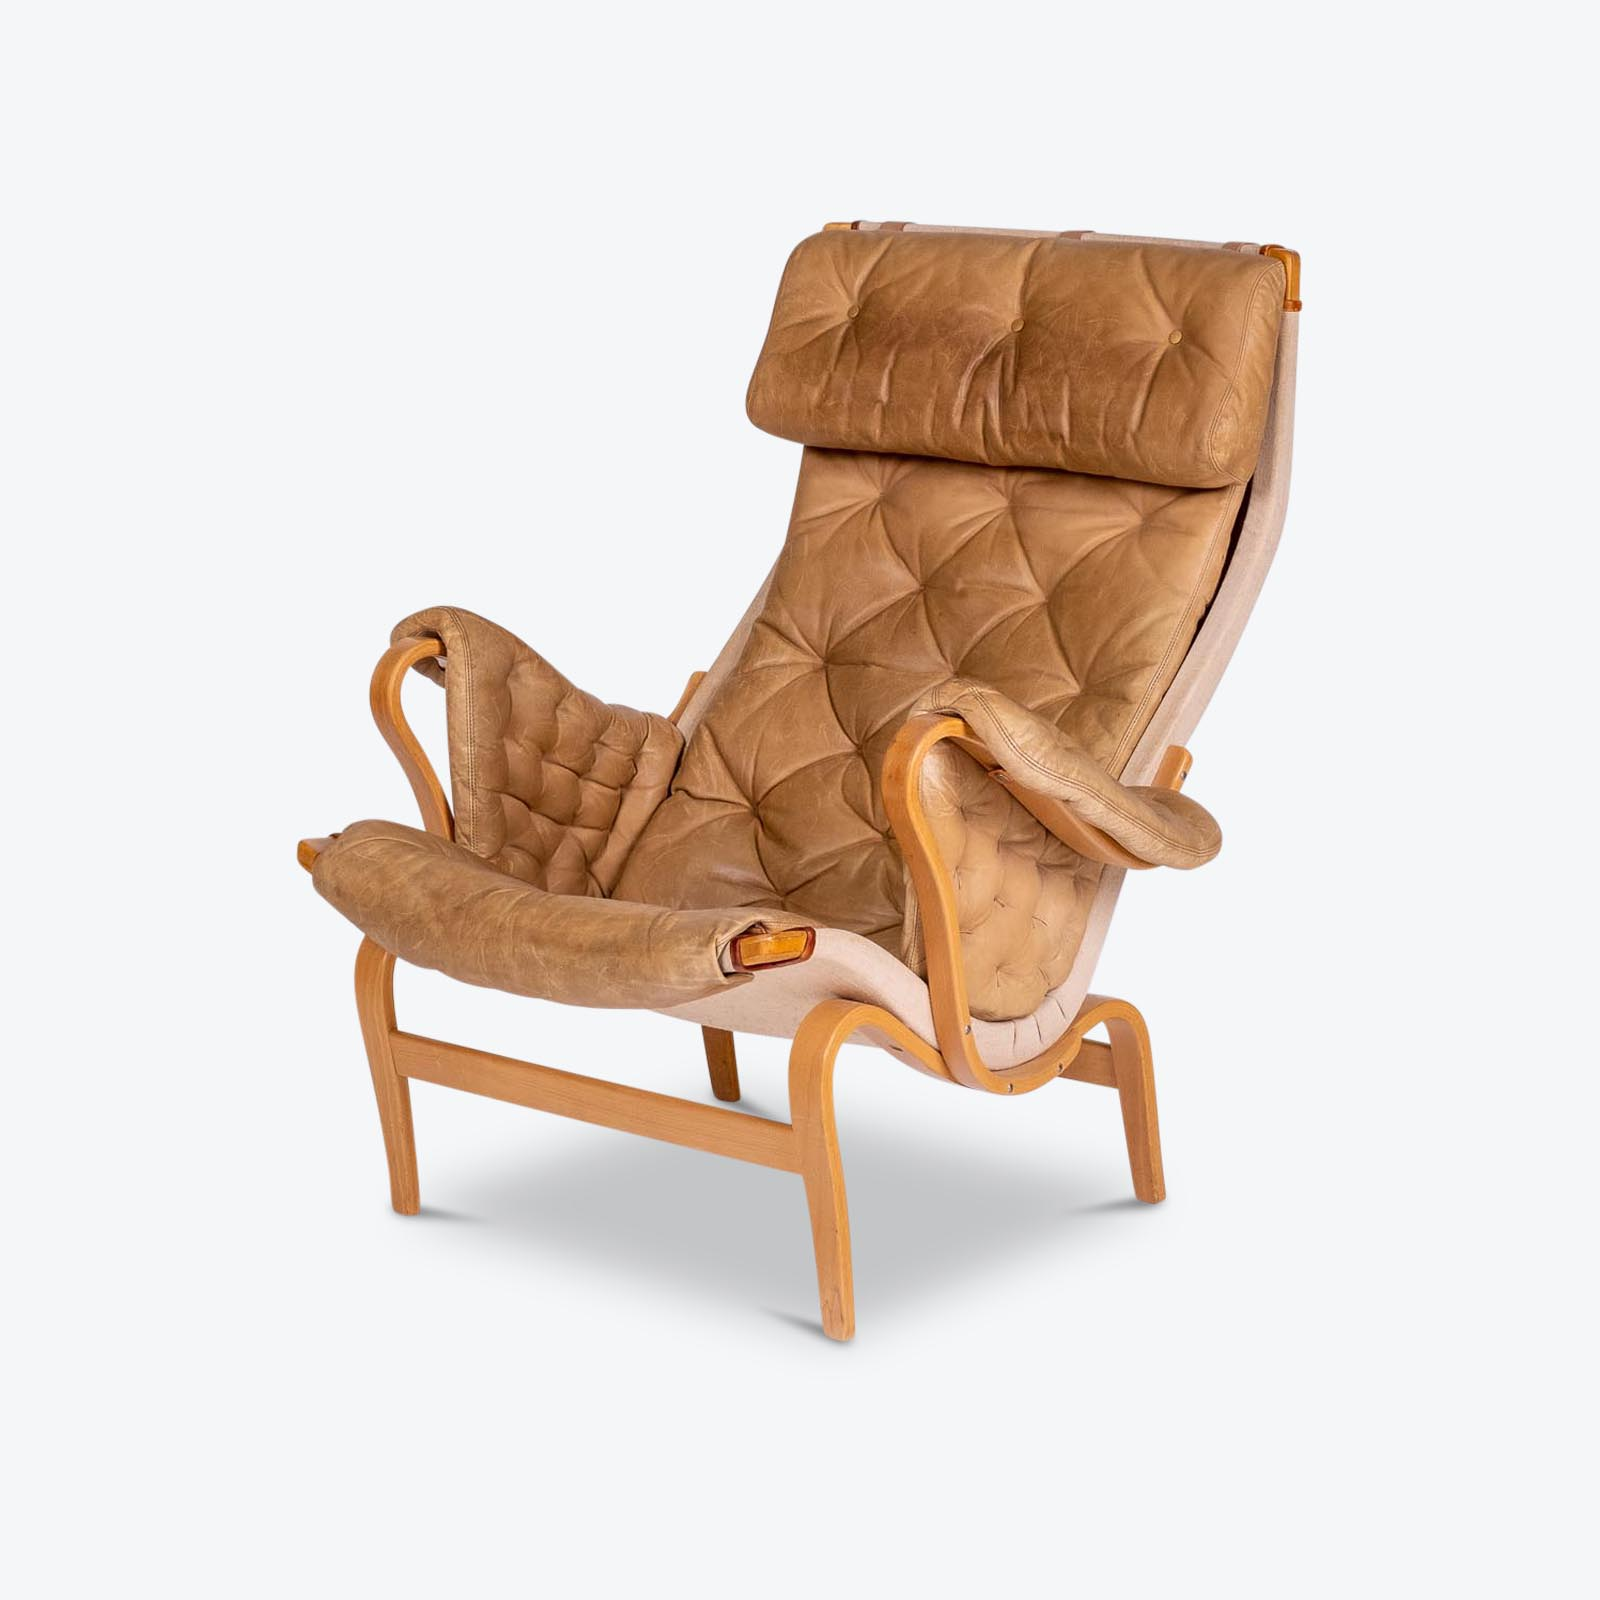 Pernilla 69 Chair By Bruno Mathsson For Dux, 1960s, Sweden Hero